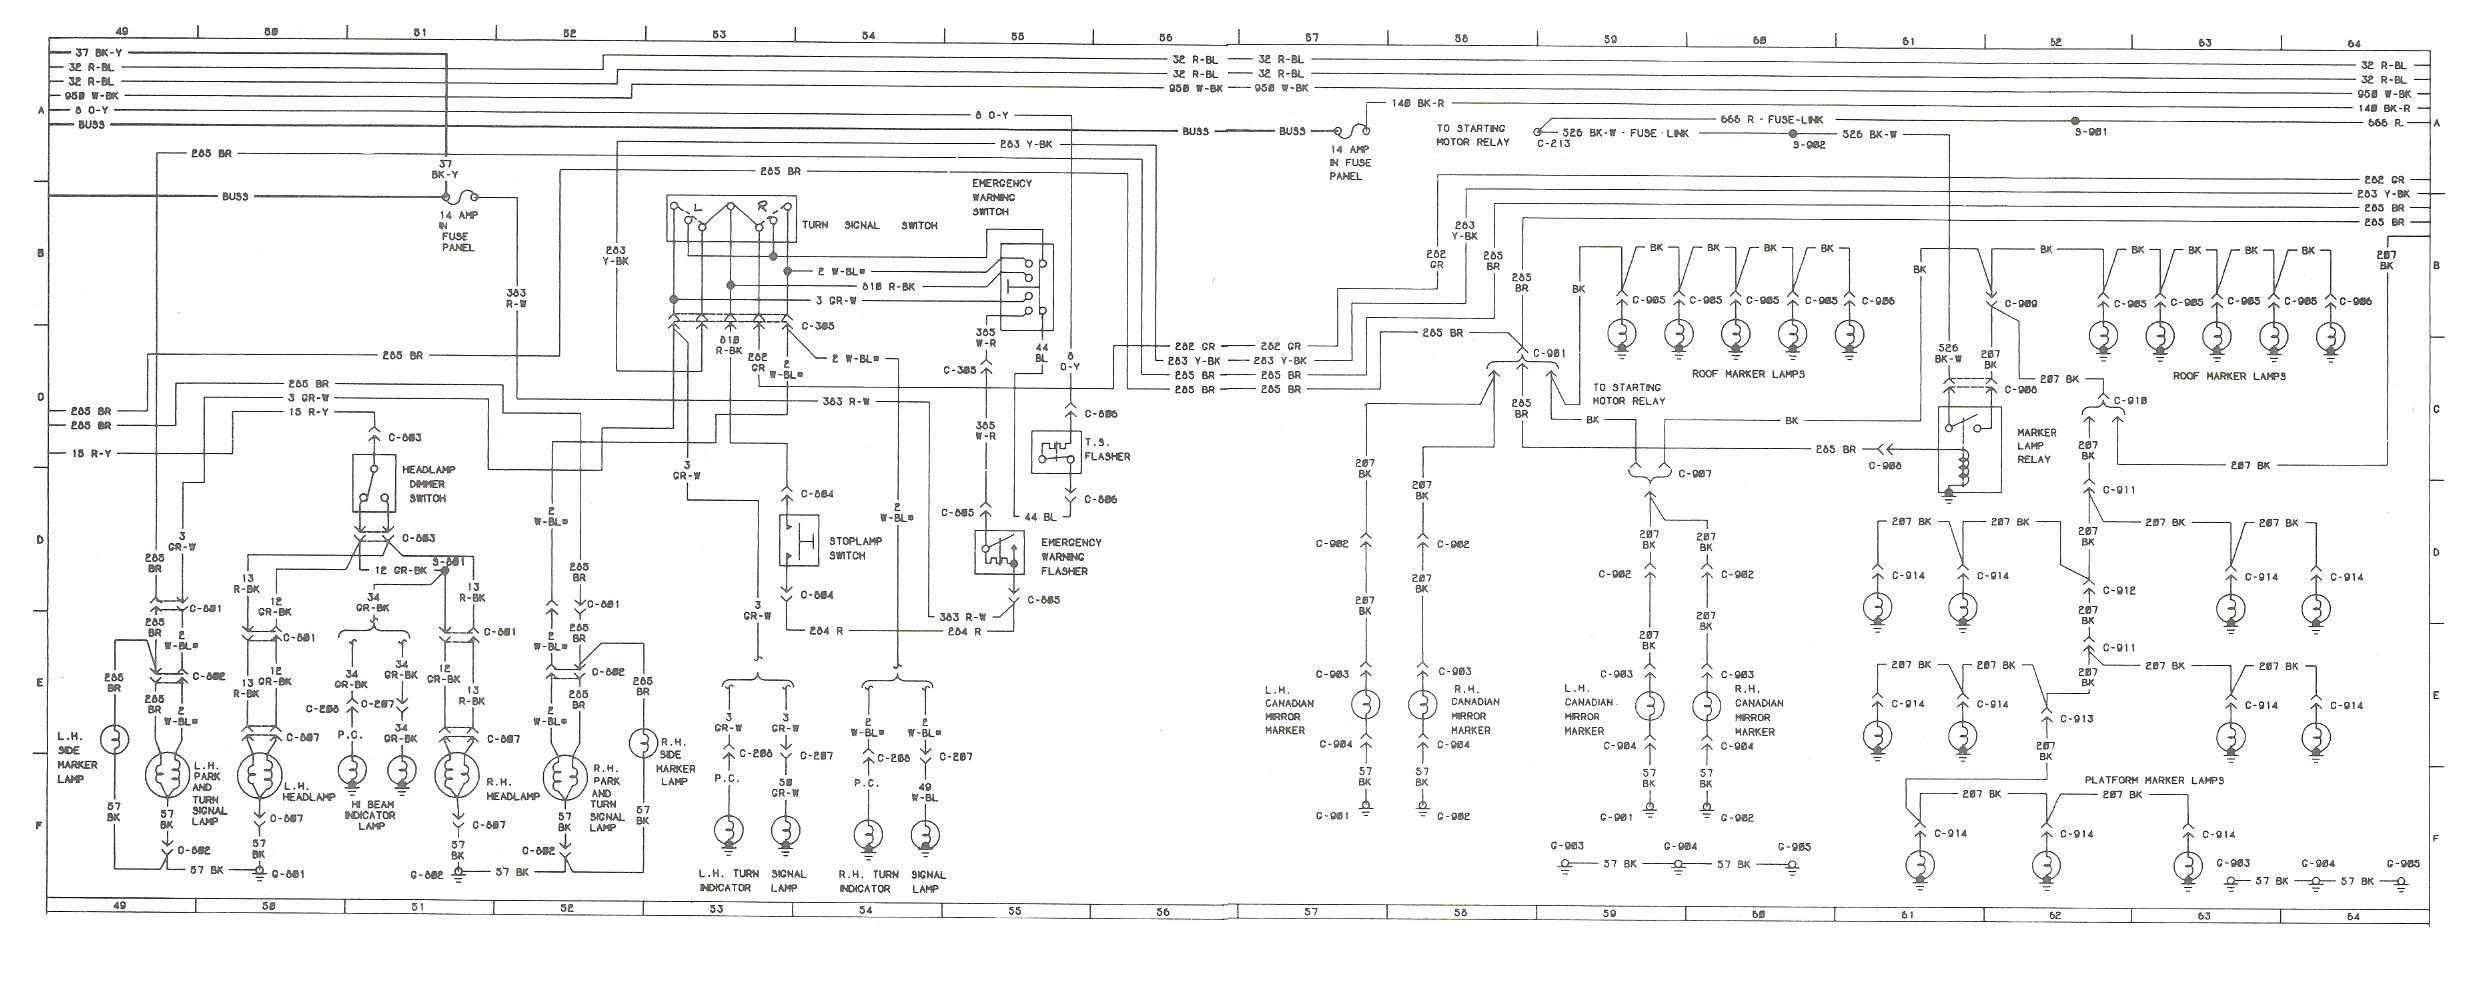 Chevy Steering Column Wiring Diagram For on painless gm column wiring diagram, 76 chevy column wiring diagram, 92 chevy 1500 steering column diagram,